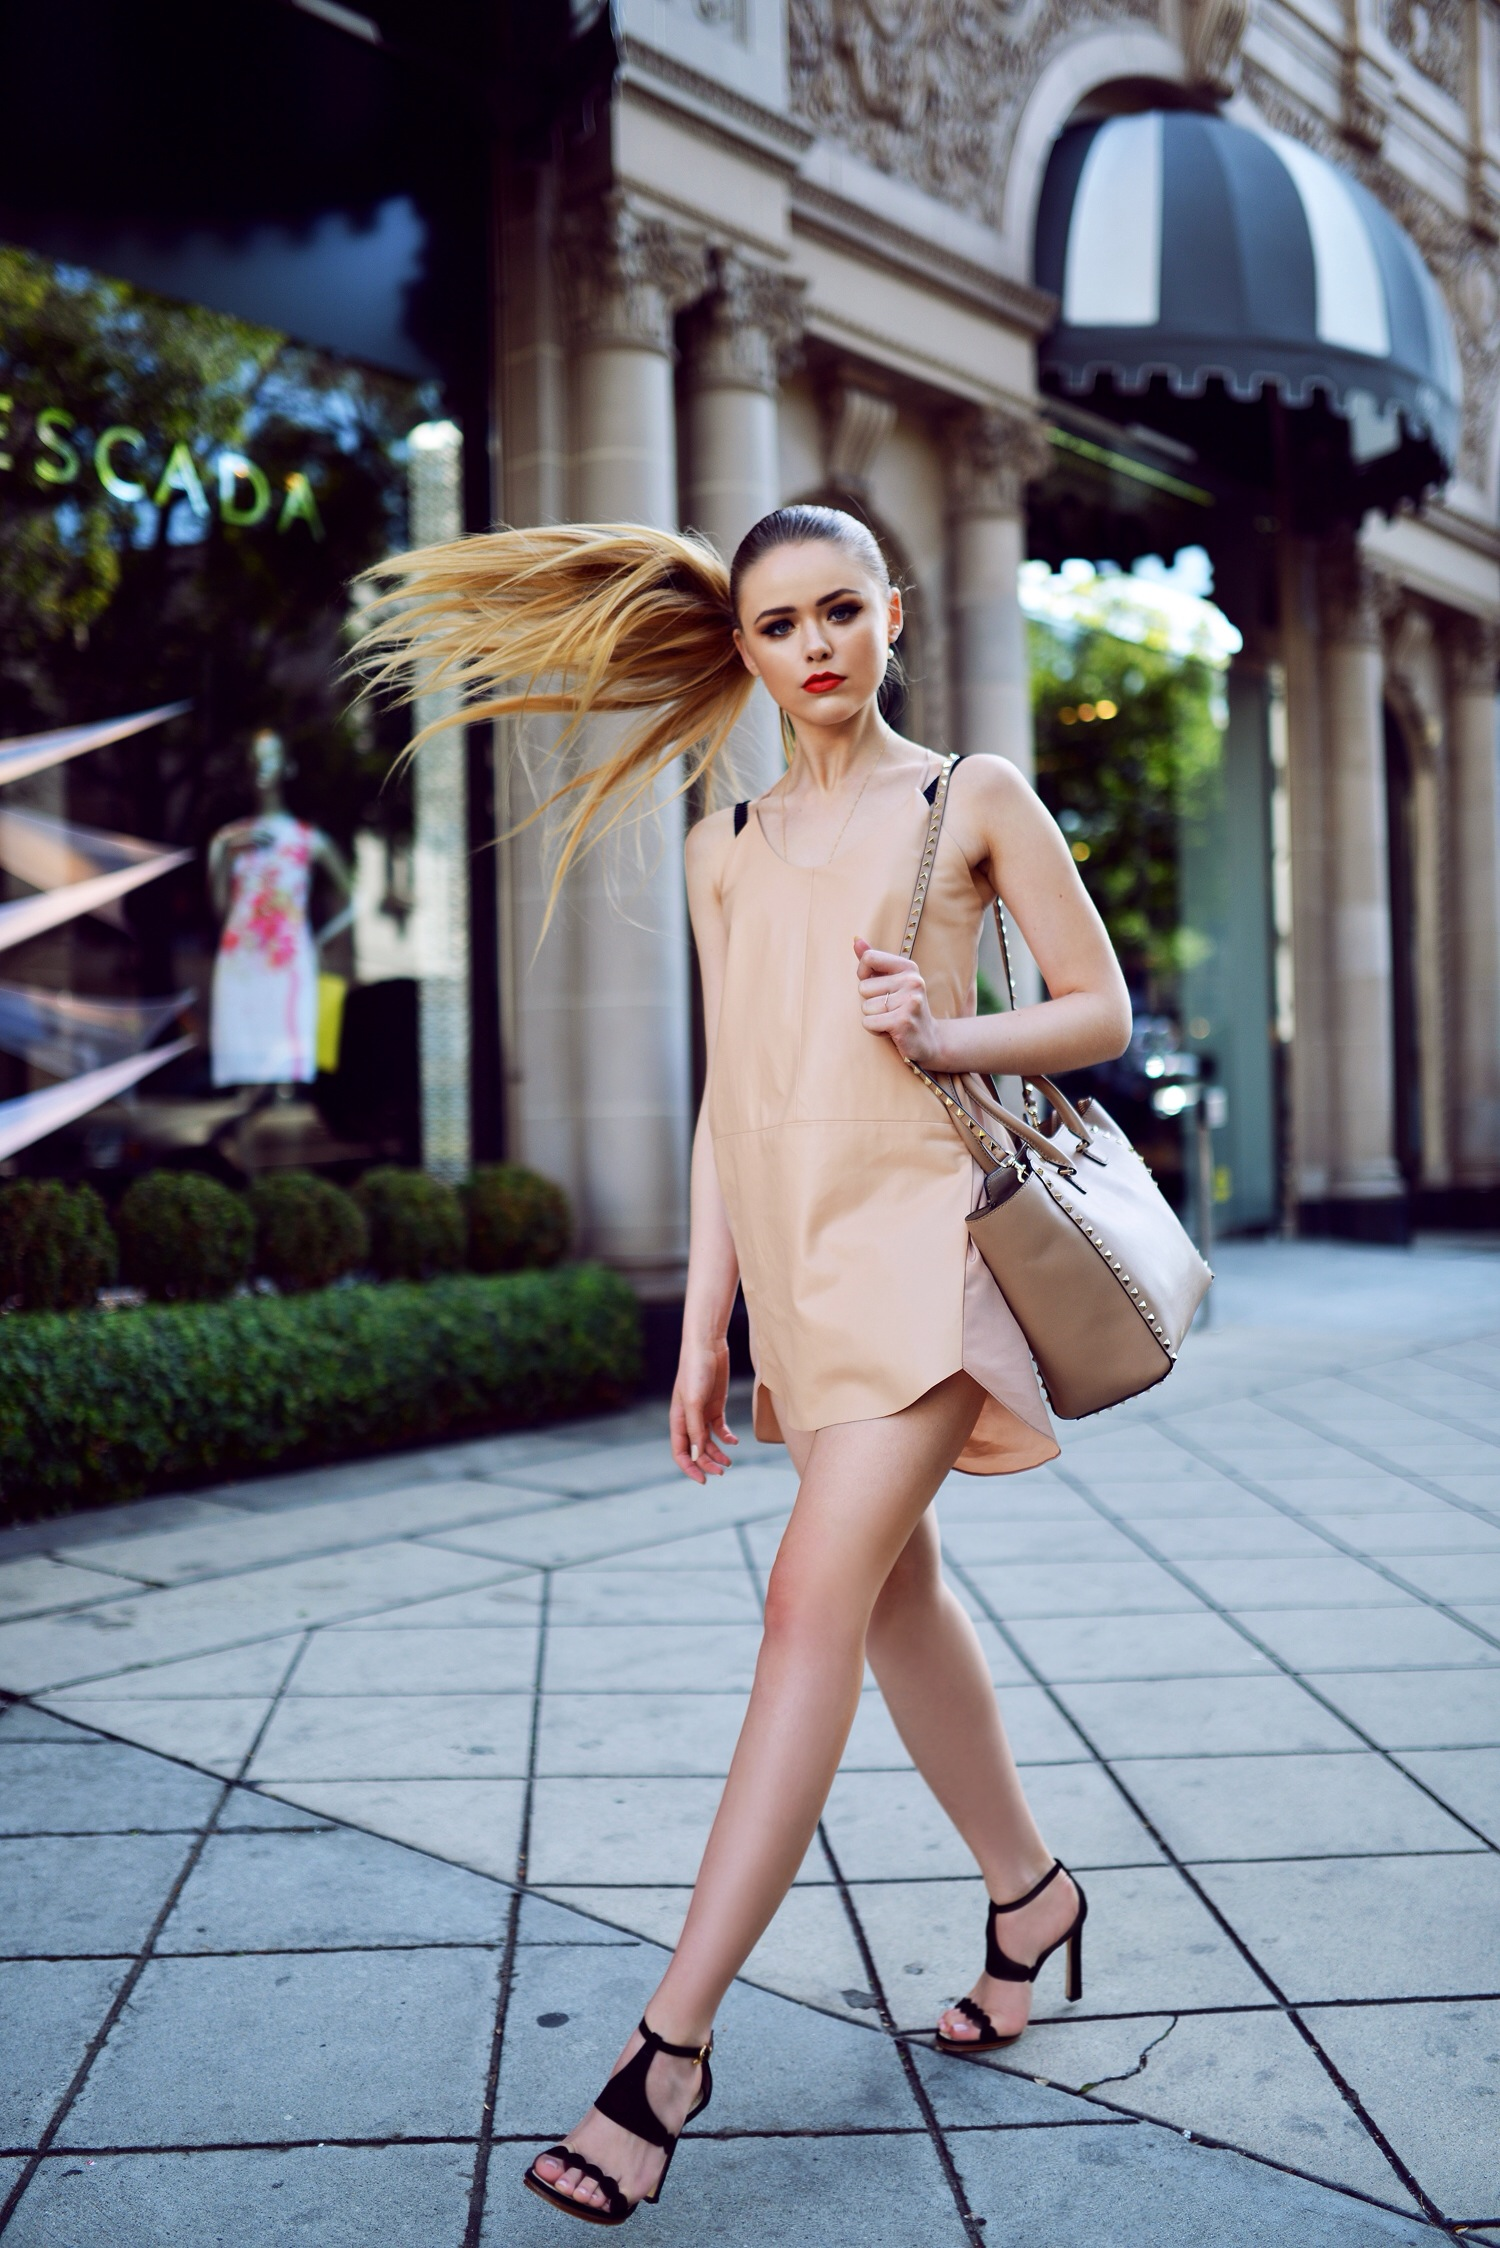 Kayture Is Wearing Nude Dress From Mason, Shoes From Fabi, And Bag From Valentino